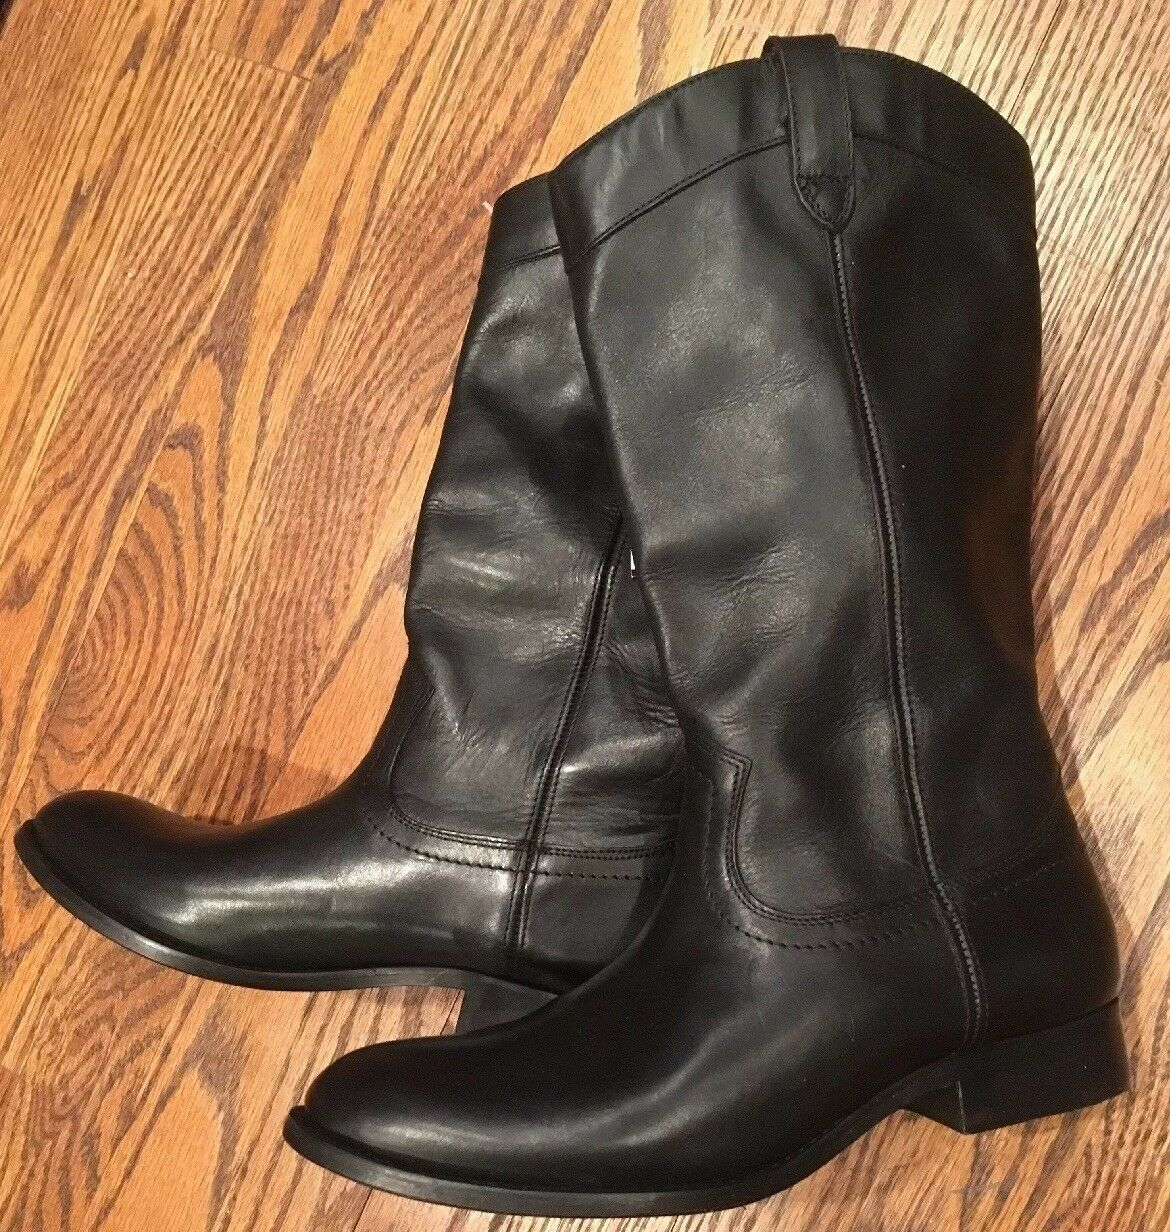 Frye Women's Black Leather Boots Size 8B New